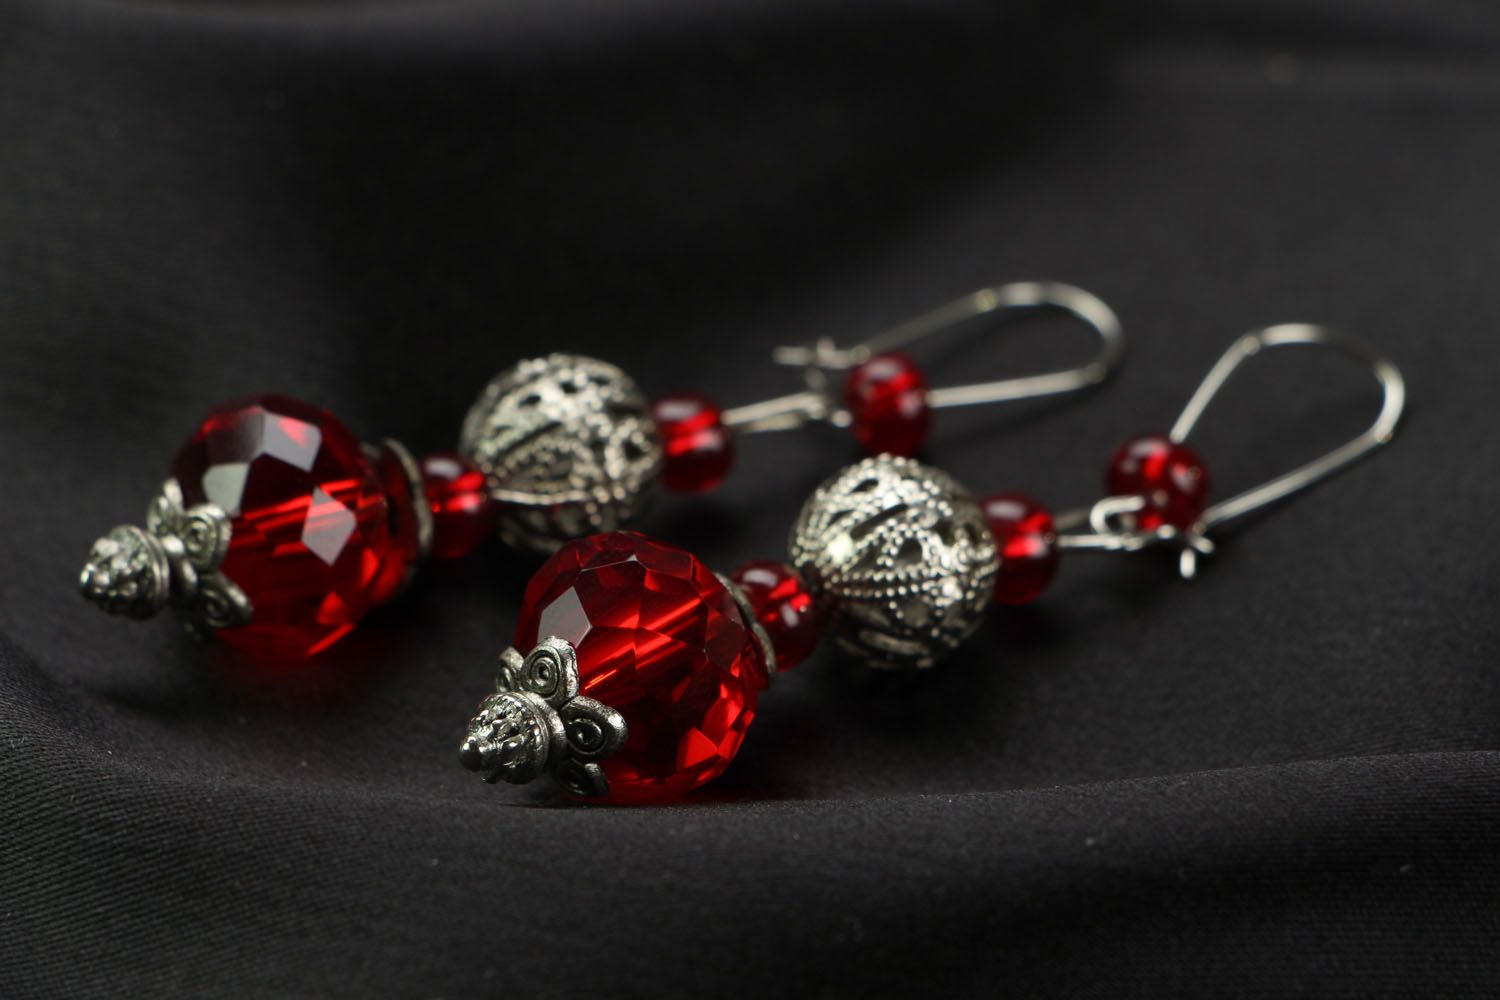 Earrings made of red plastic beads photo 2